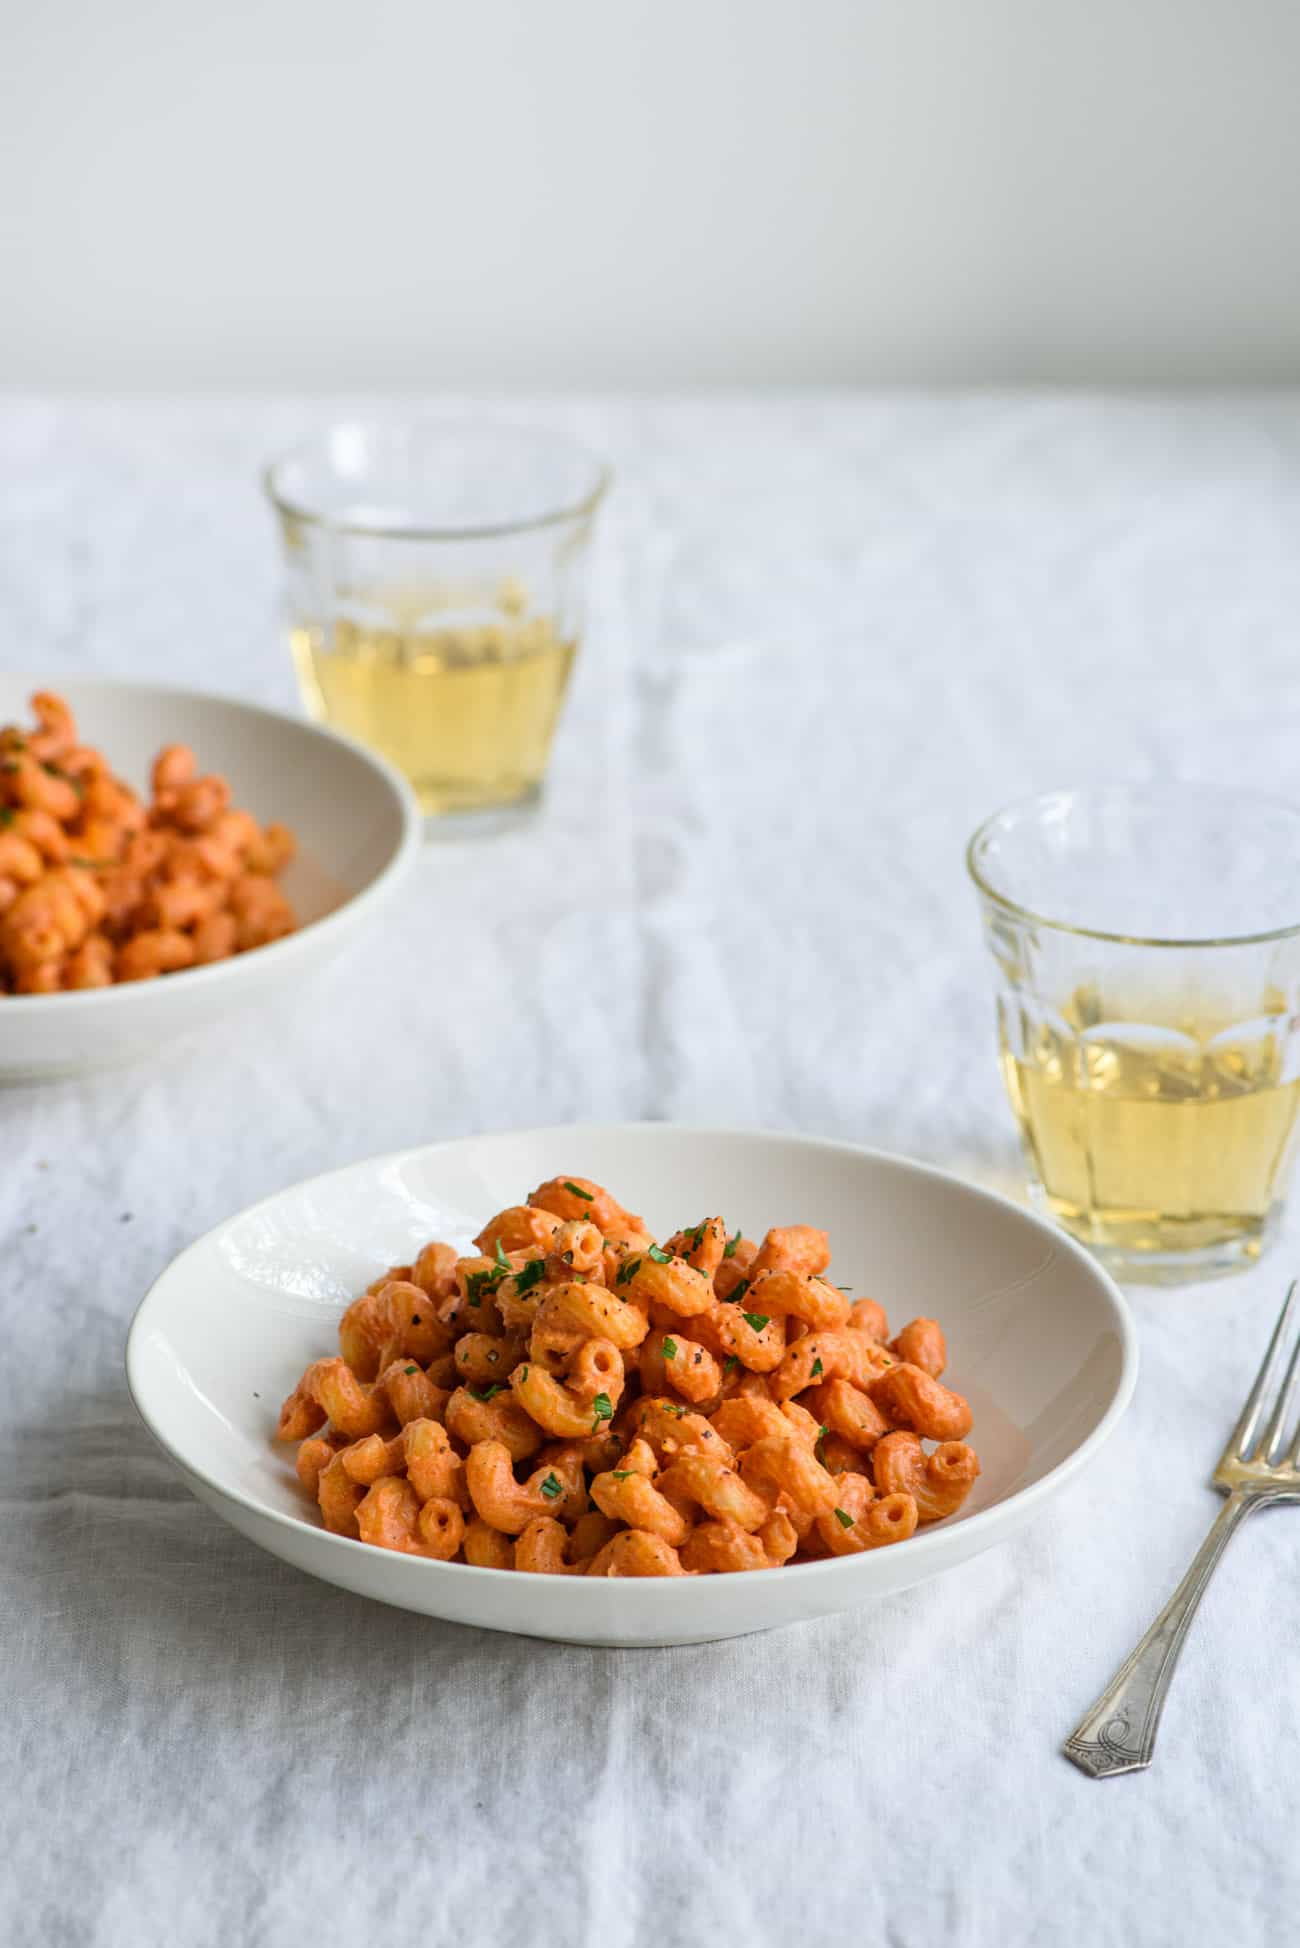 Two bowls of creamy tomato pasta with vegan vodka sauce on a white tablecloth next to glasses of white wine